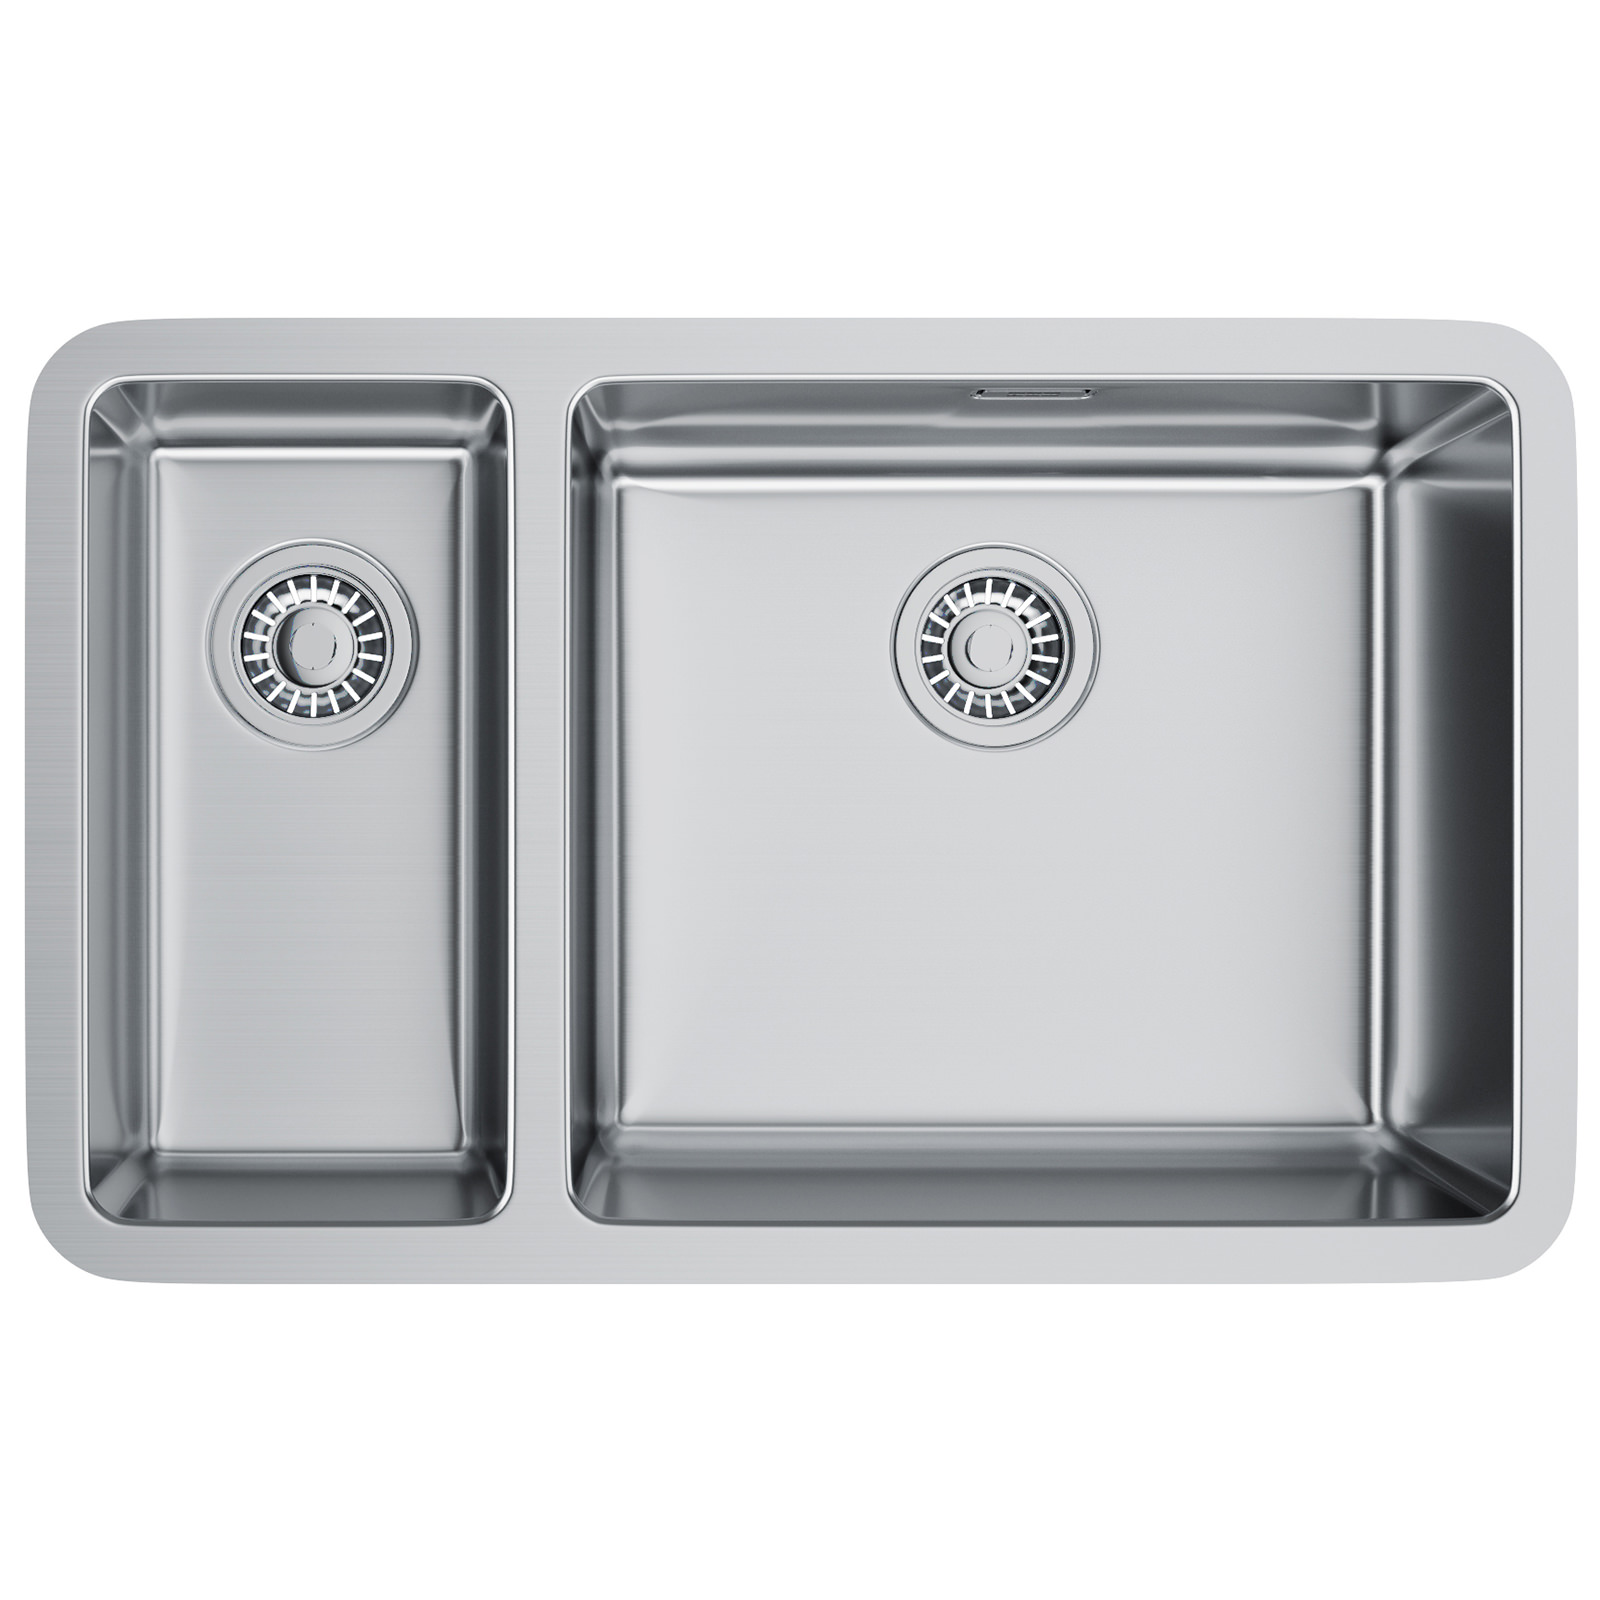 Franke Kubus KBX 160 45-20 Stainless Steel Undermount Kitchen Sink ...